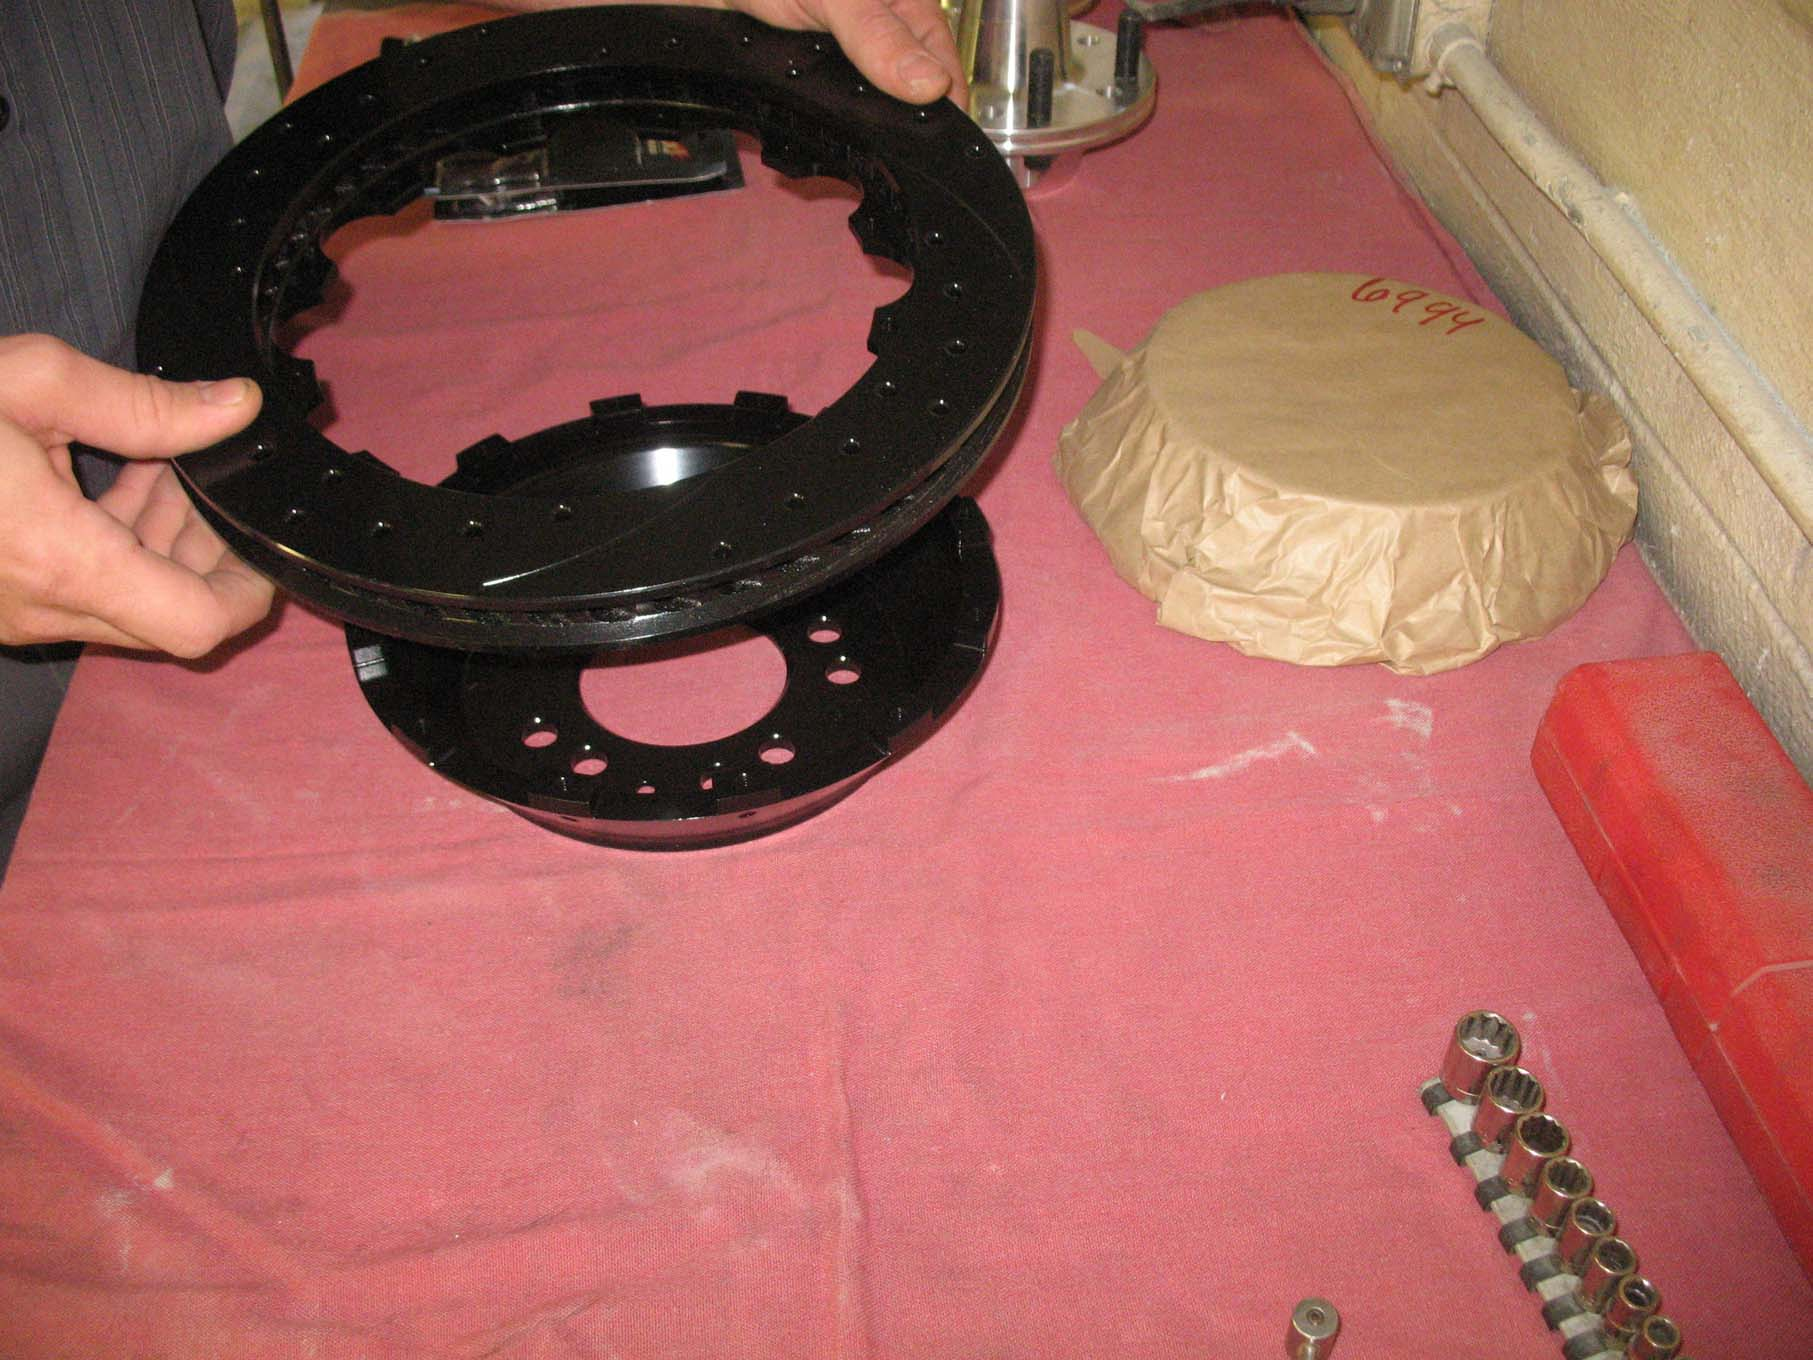 The Wilwood rotors are comprised of two parts, the disc and the hat.